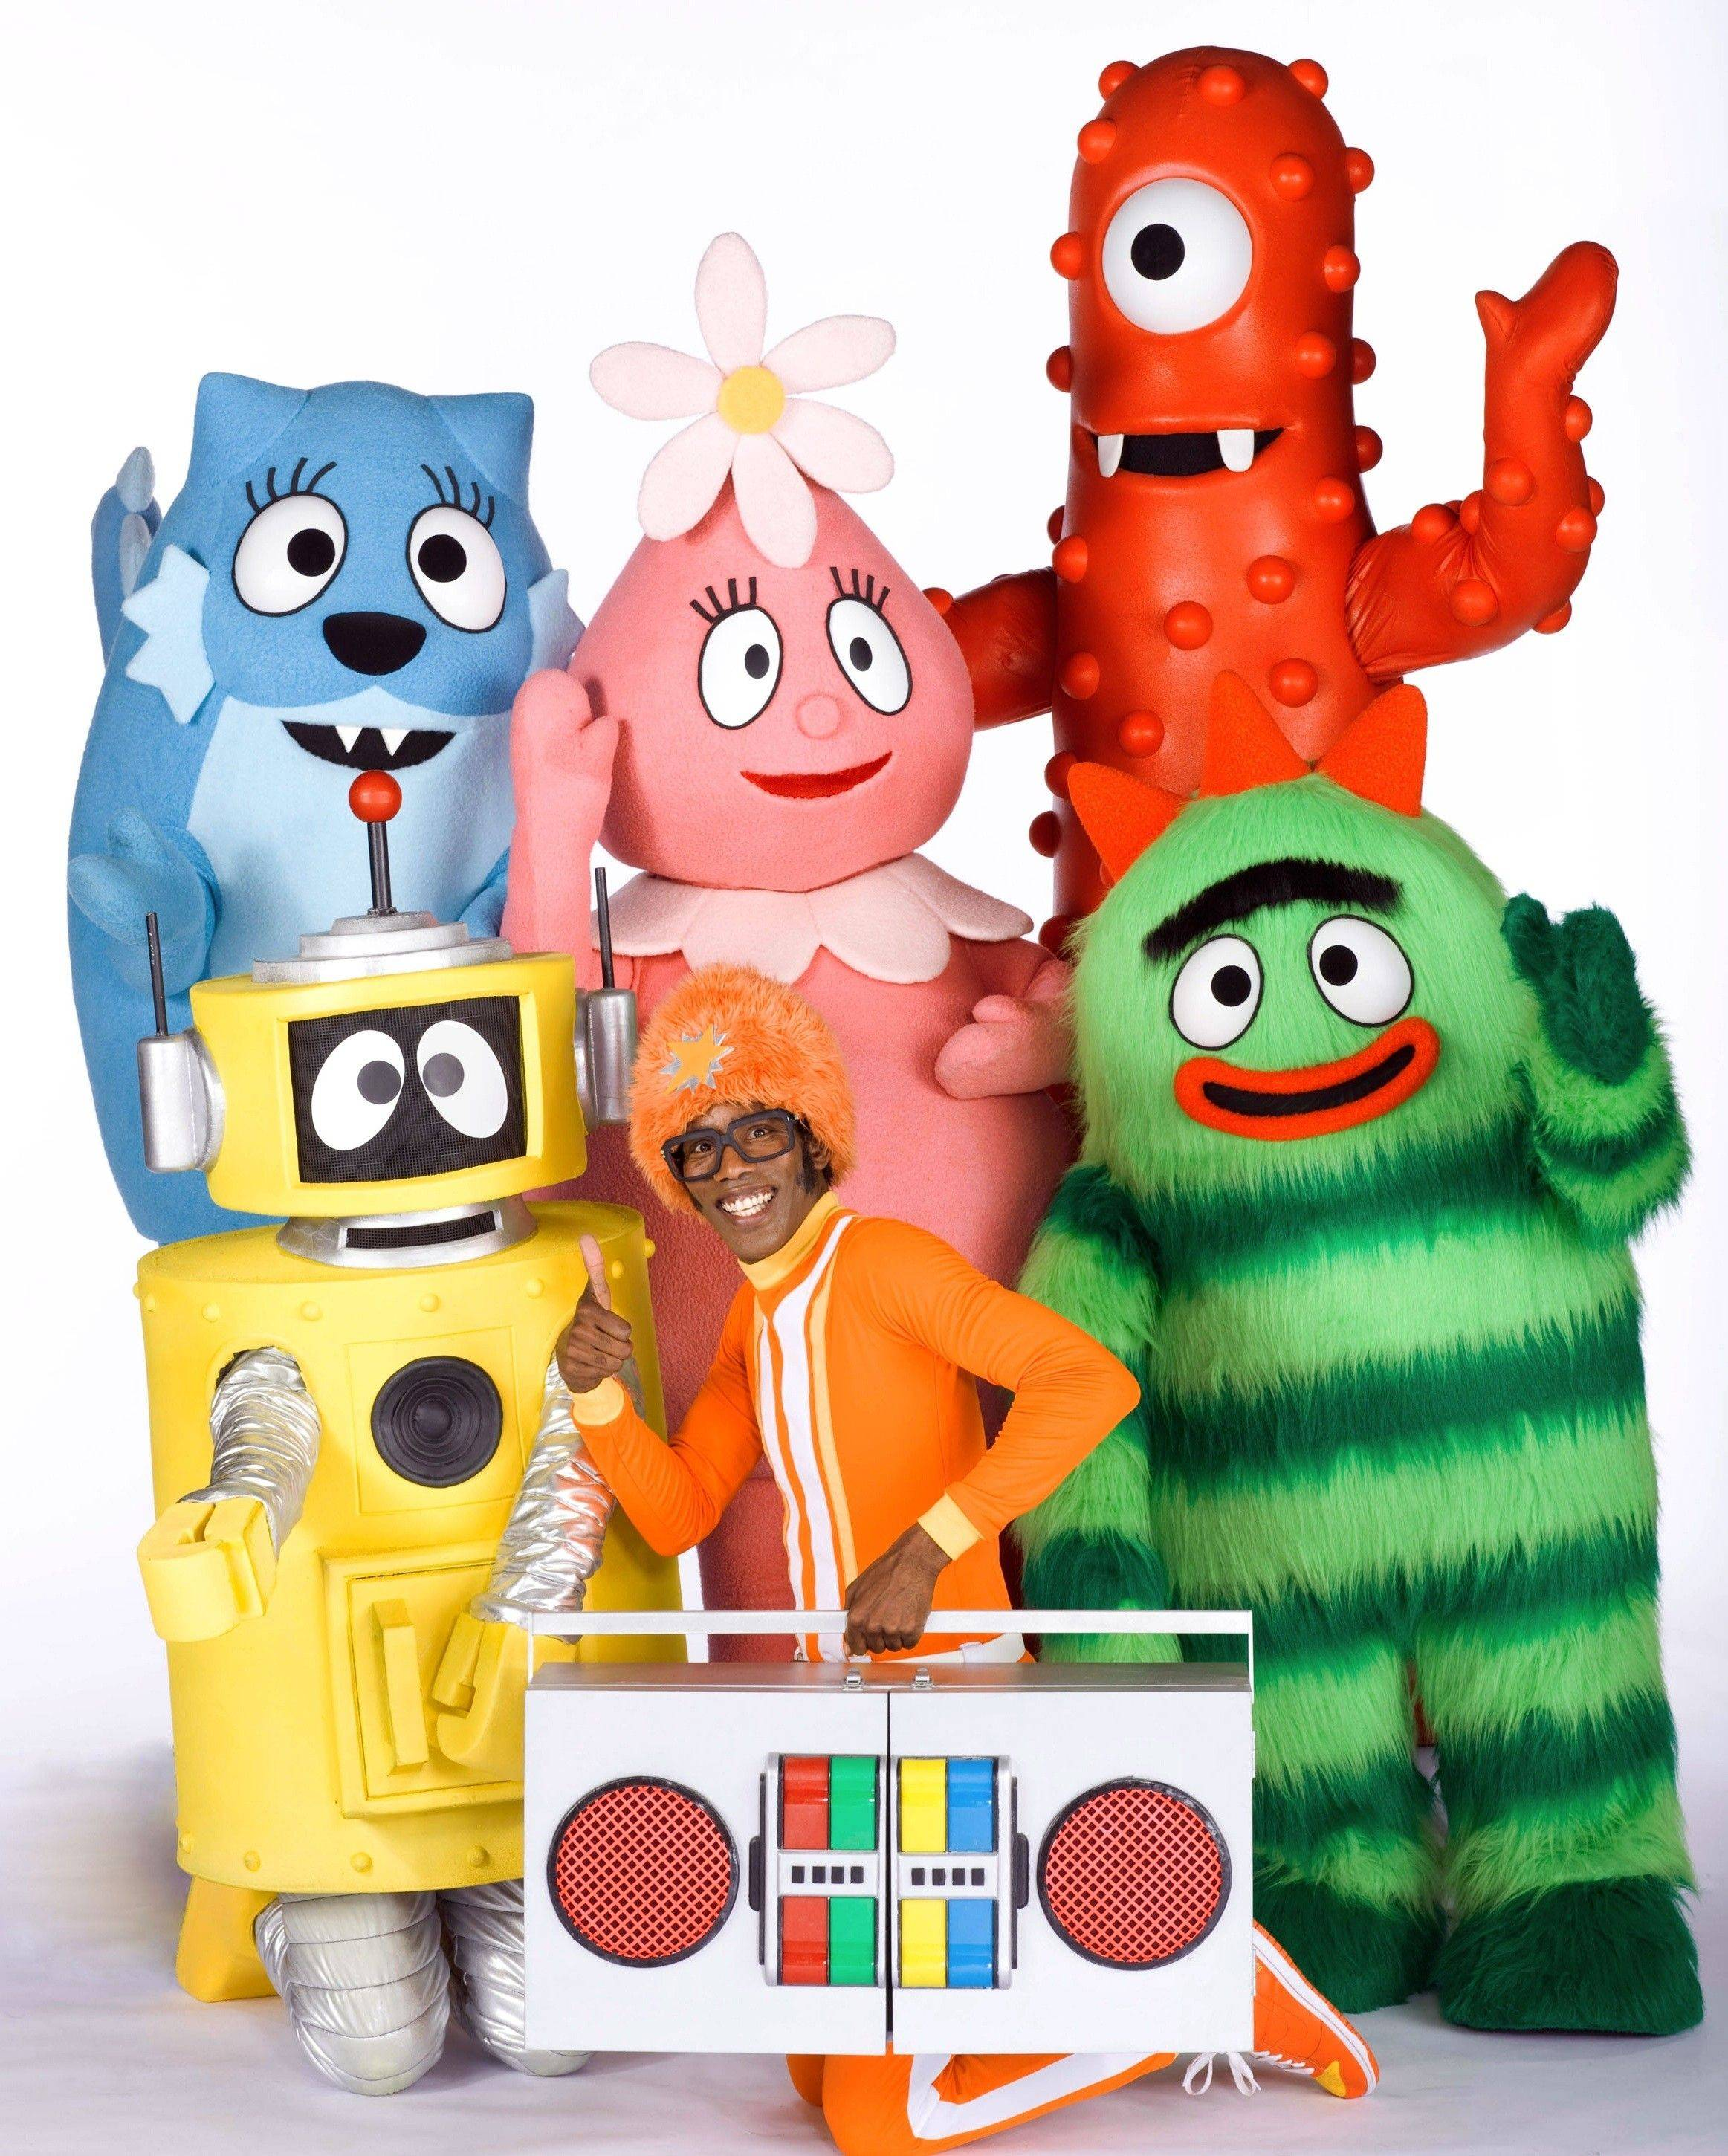 """Yo Gabba Gabba! Live! It's Time to Dance"" plays four shows at the Rosemont Theatre on Saturday and Sunday, Sept. 24-25."